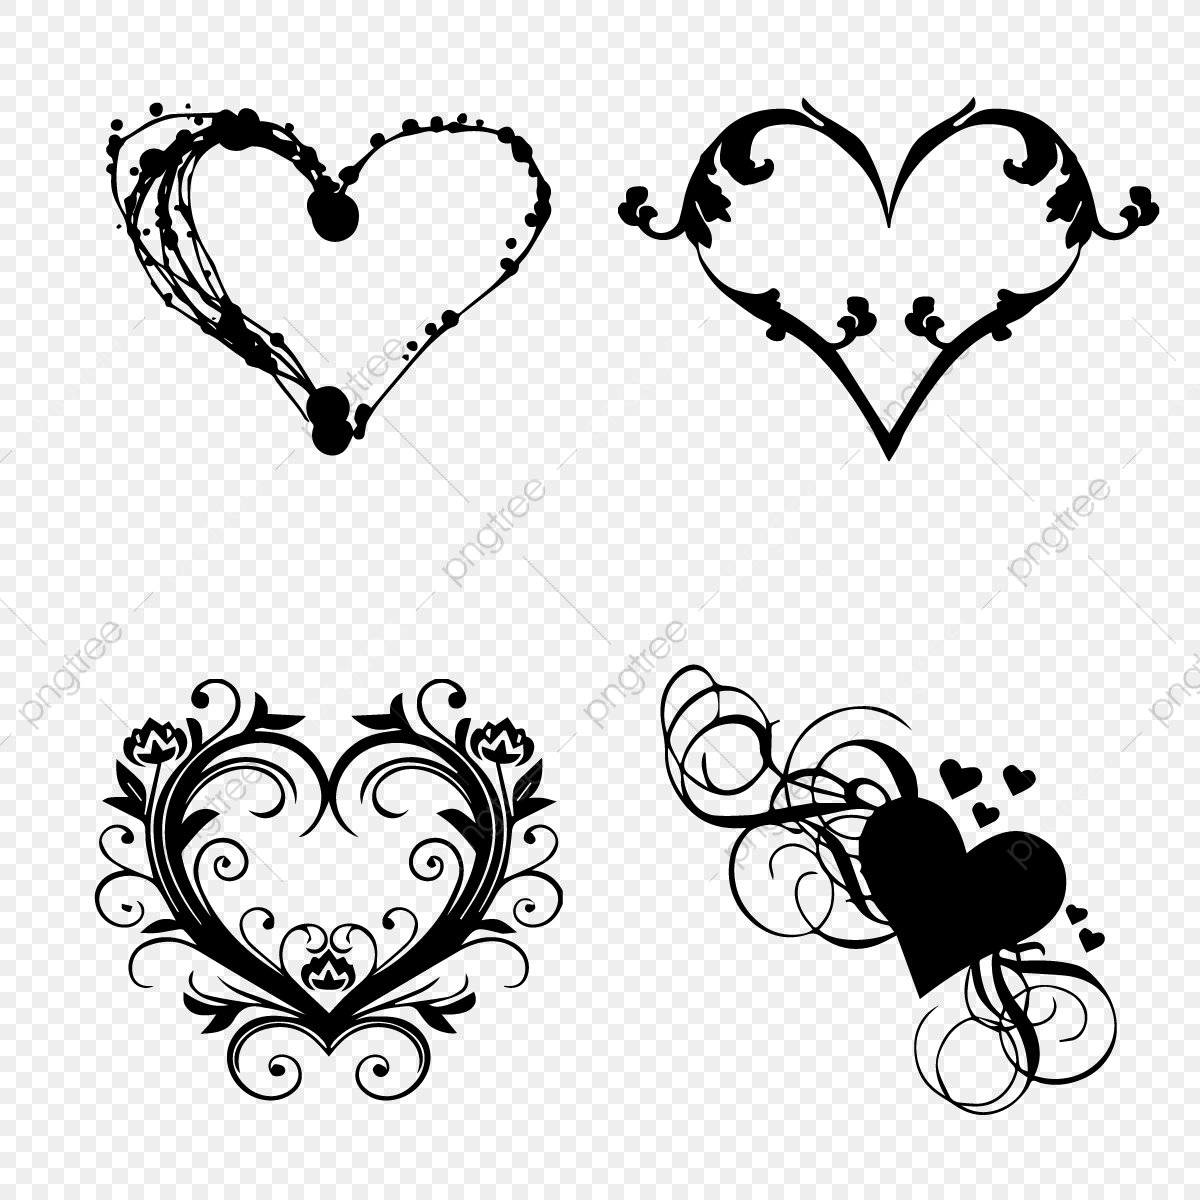 1 clipart outline.